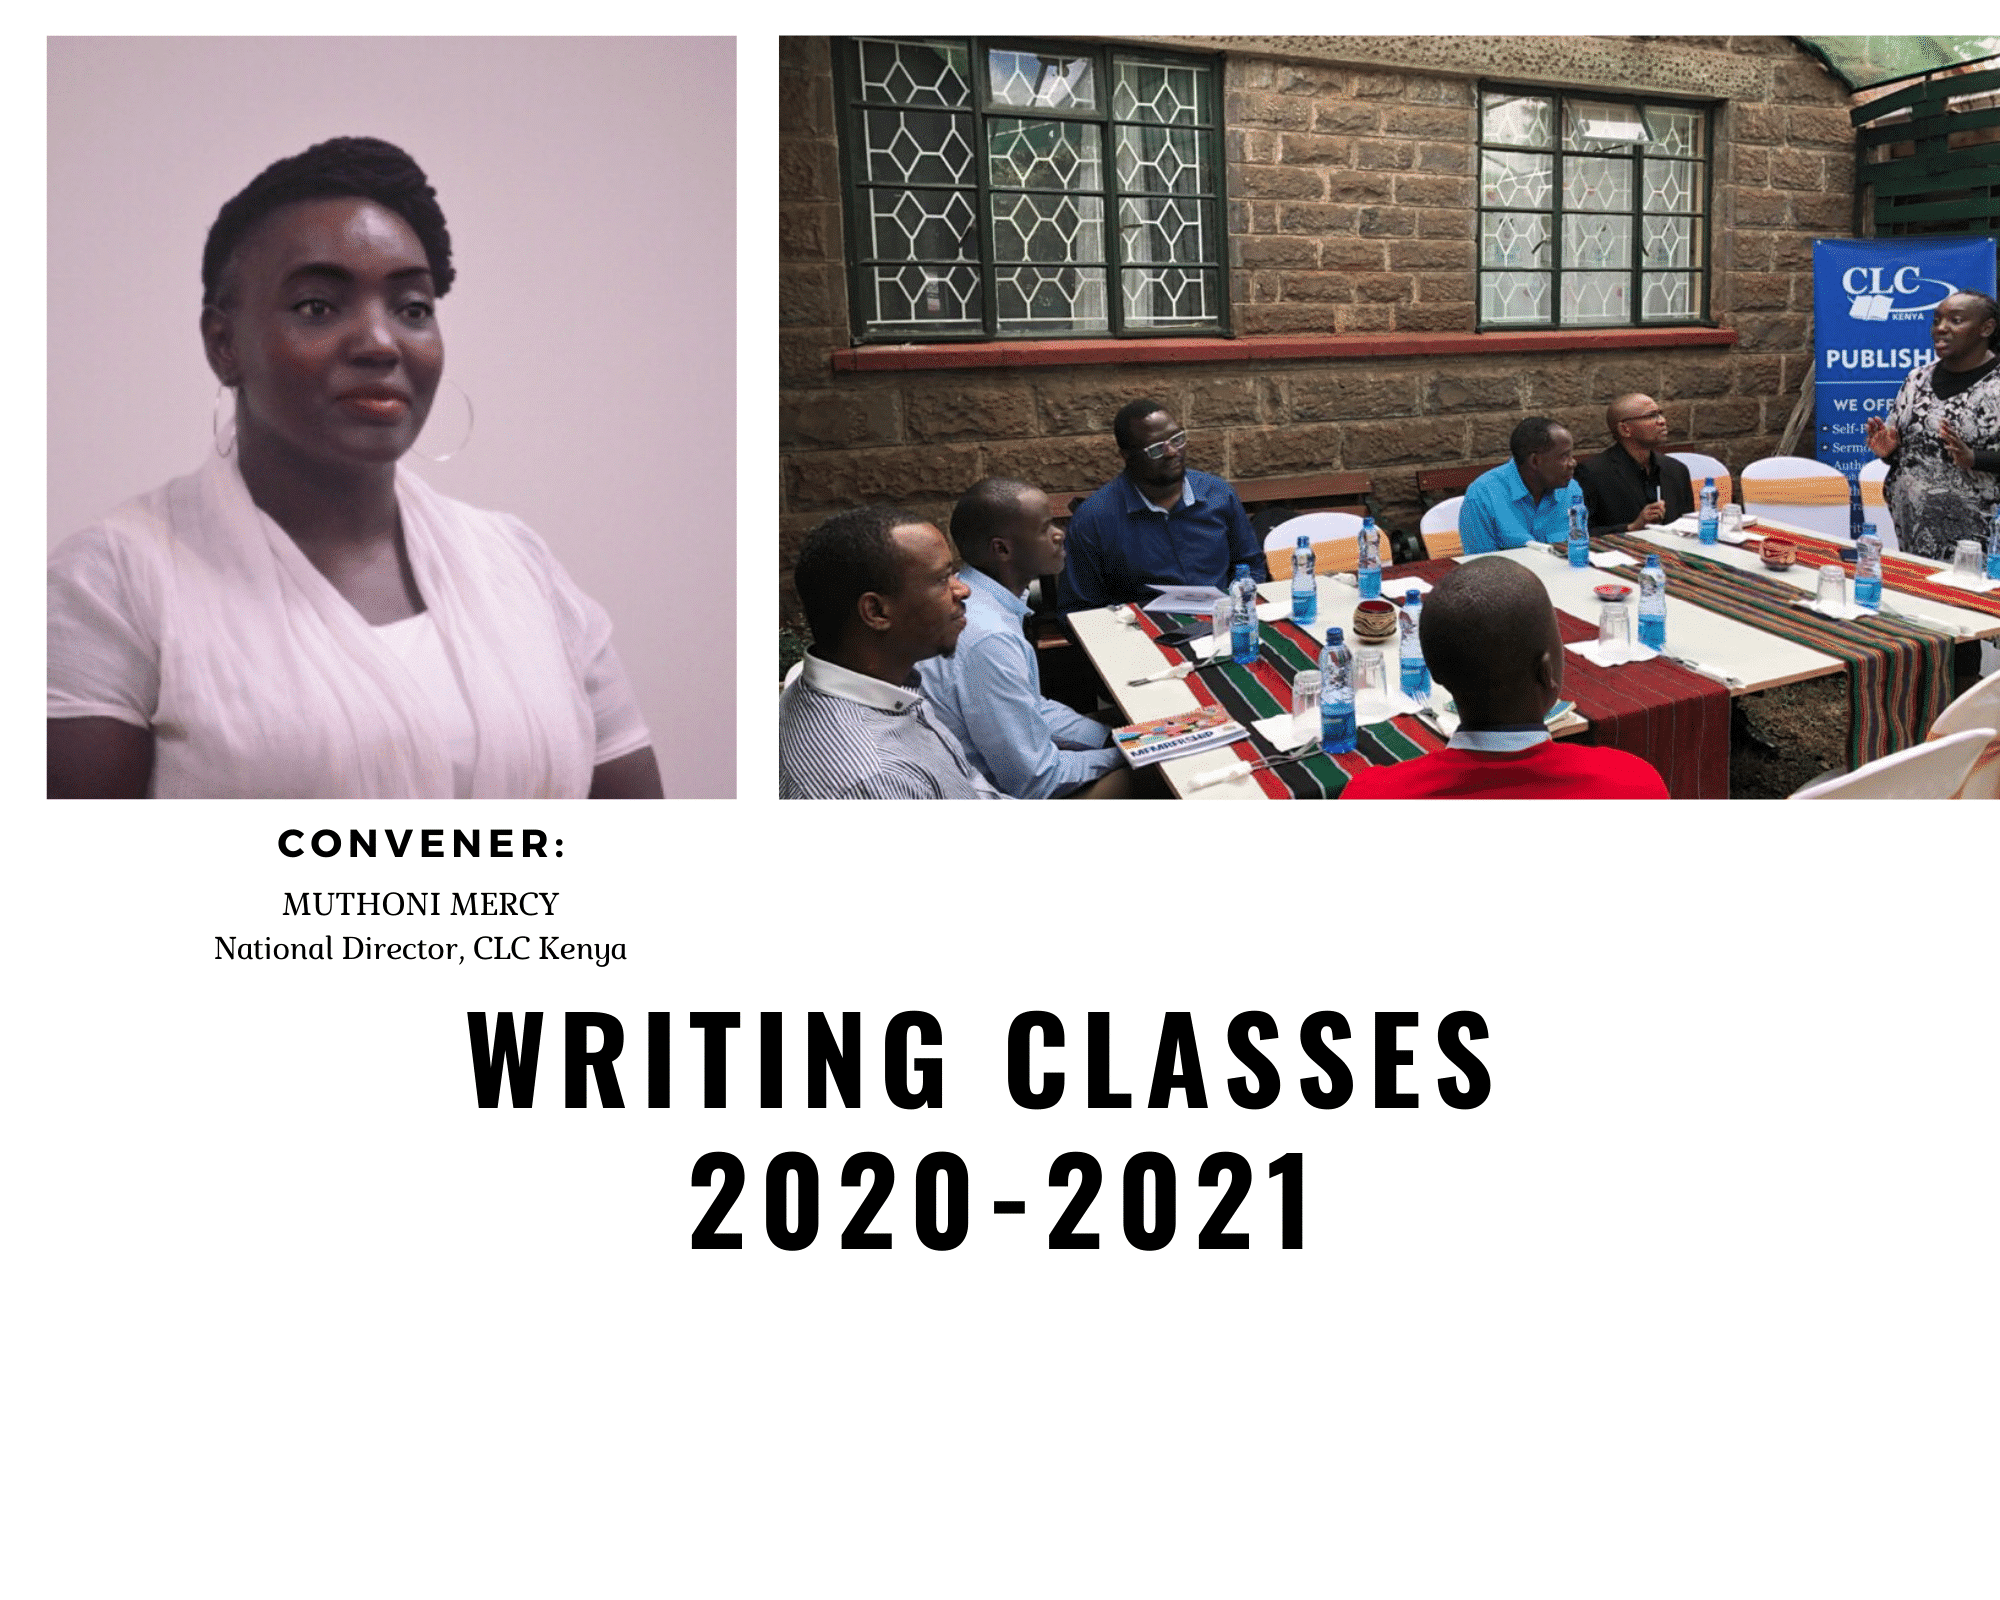 Writing Classes 2020-2021 (with Muthoni Mercy)